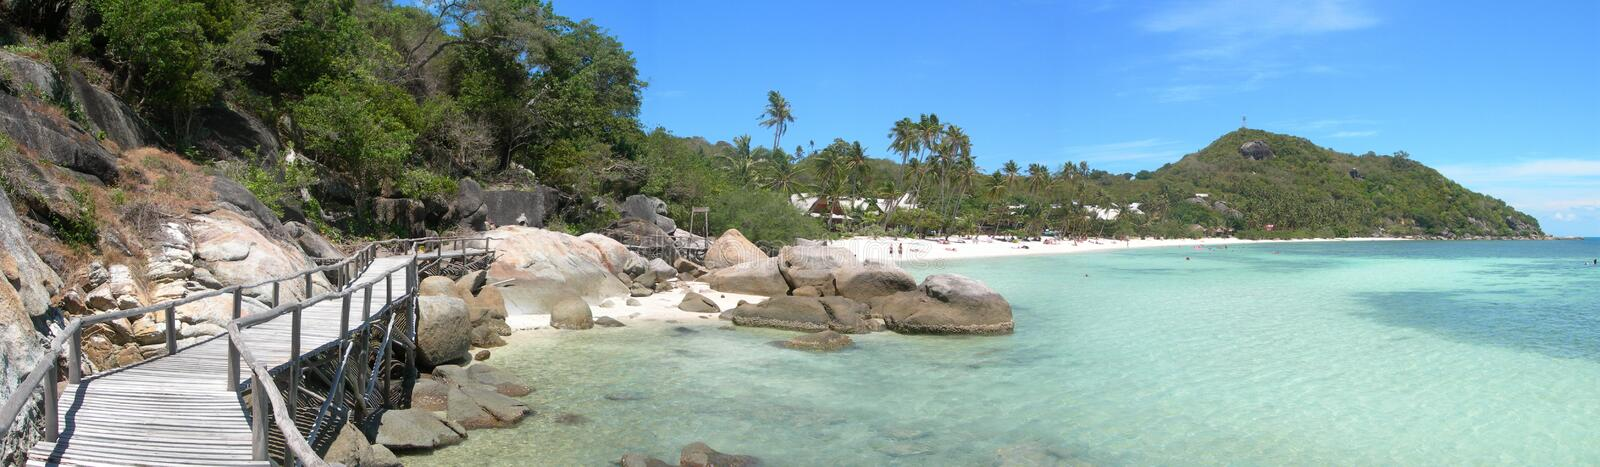 Download Leela Beach Thailand Royalty Free Stock Photography - Image: 2314807